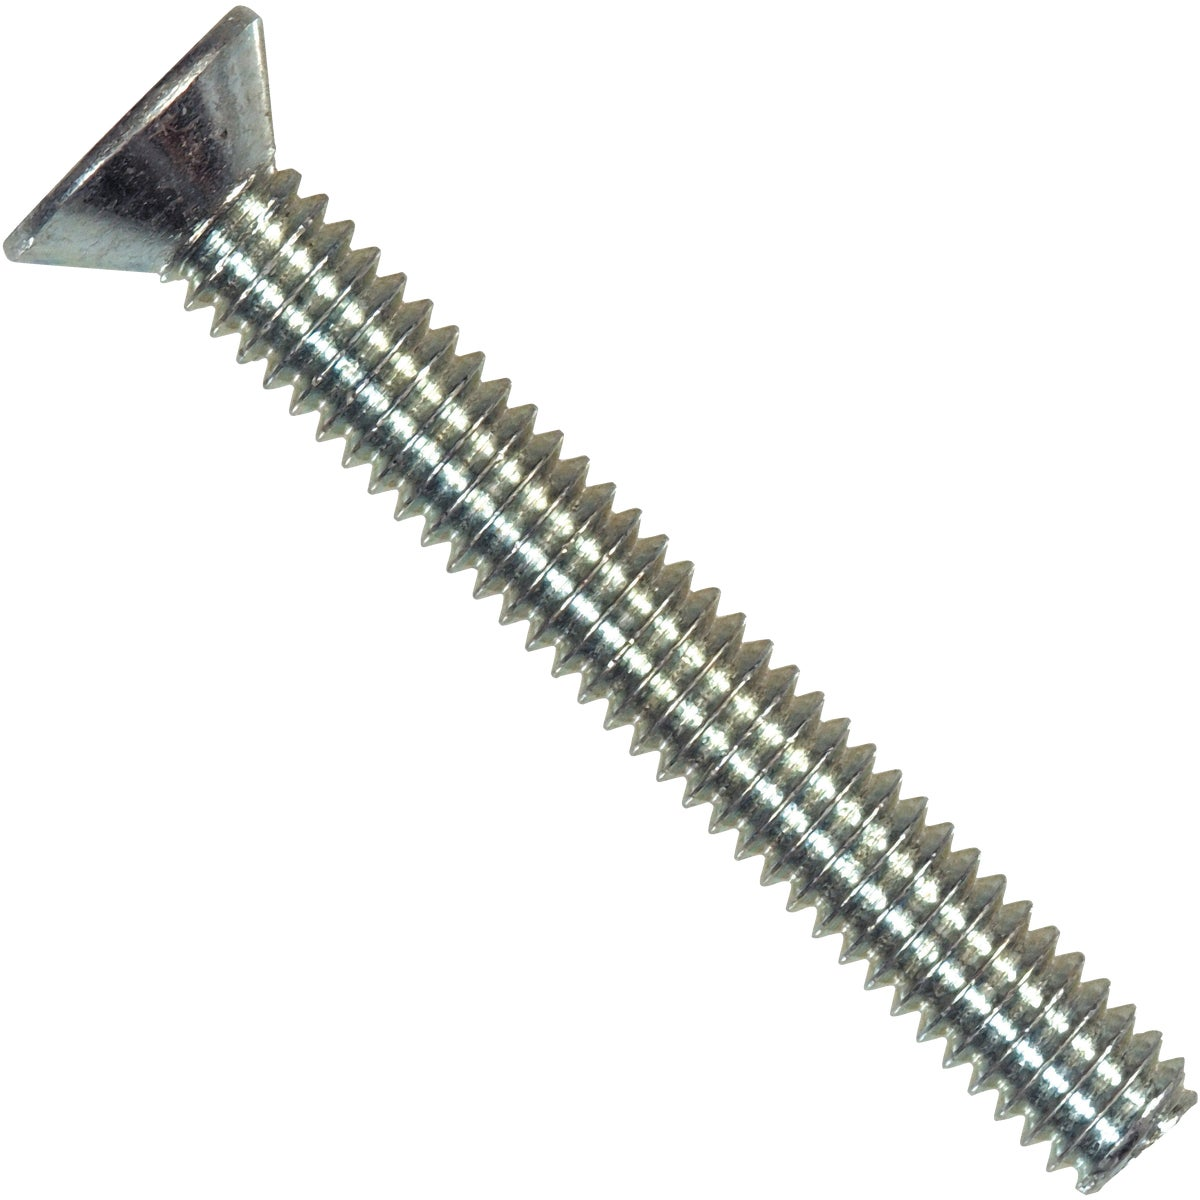 10-24X1/2 FH MACH SCREW